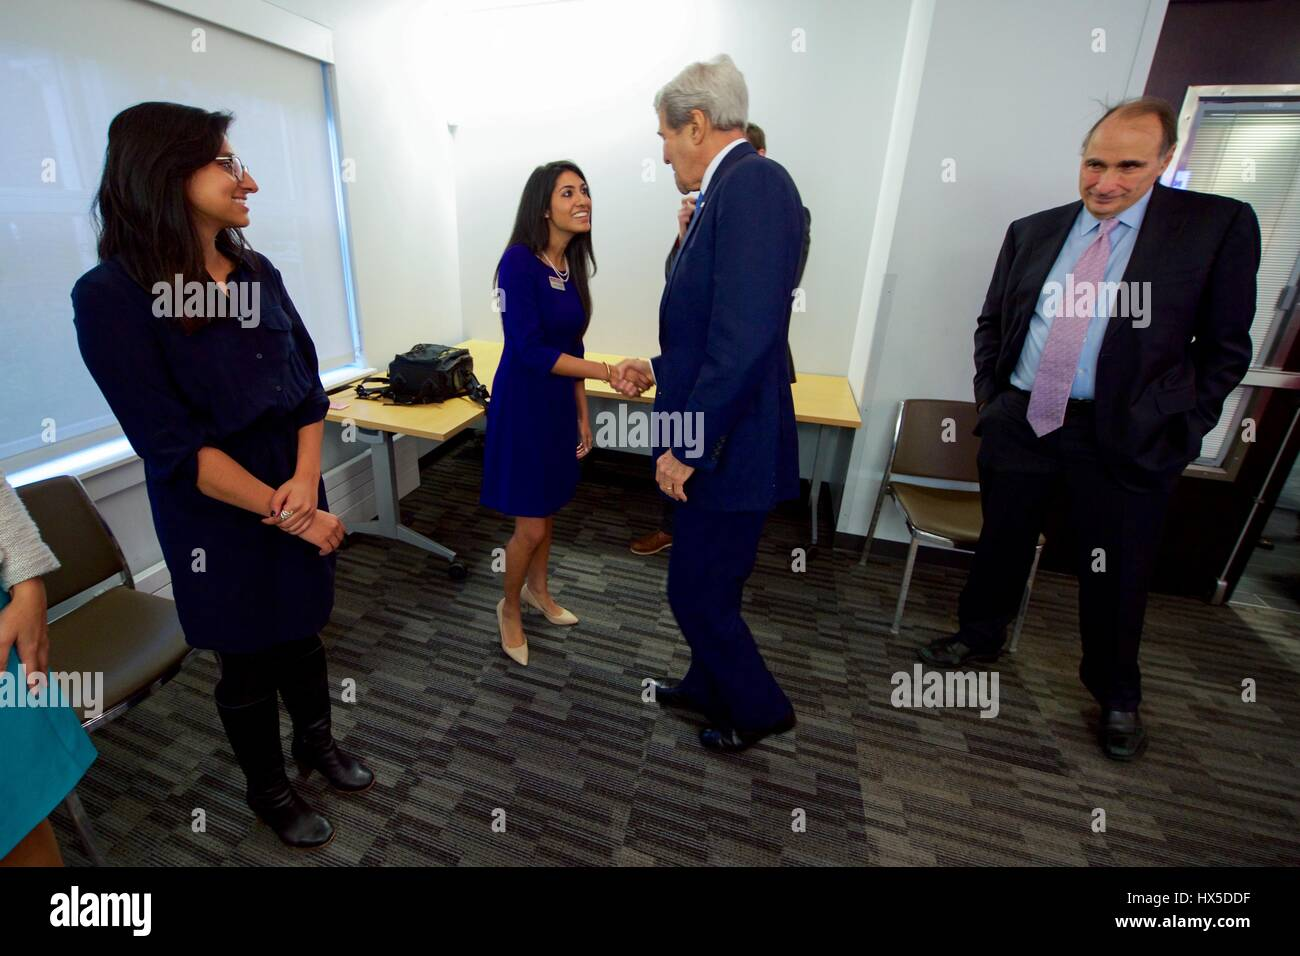 US Secretary of State John Kerry meets with University of Chicago Institute of Politics students, October 26, 2016. - Stock Image